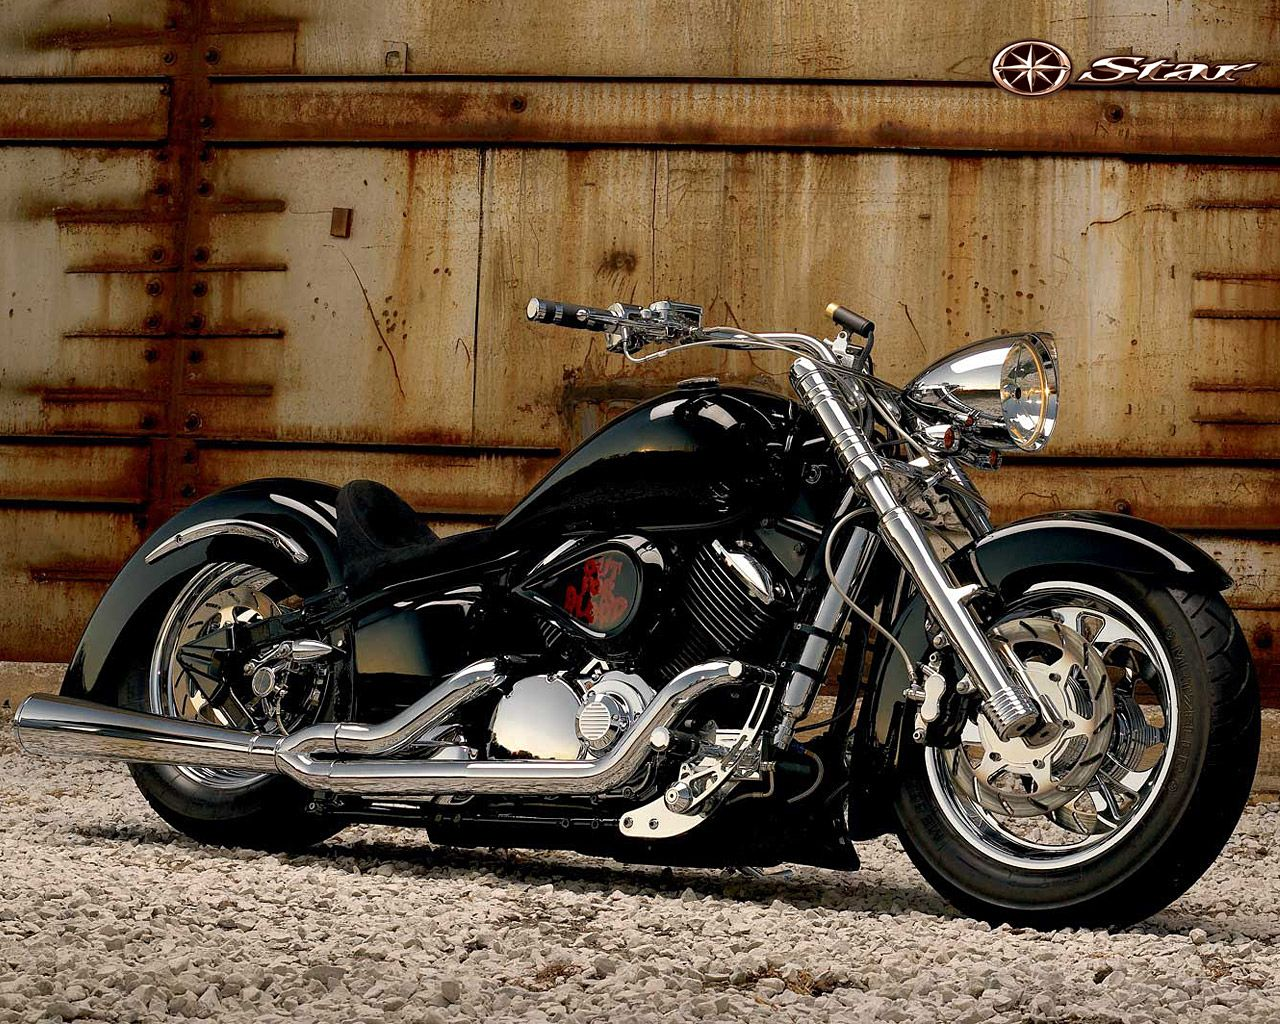 pin by scott short on my bikes pinterest yamaha star motorcycles choppers and bobbers. Black Bedroom Furniture Sets. Home Design Ideas